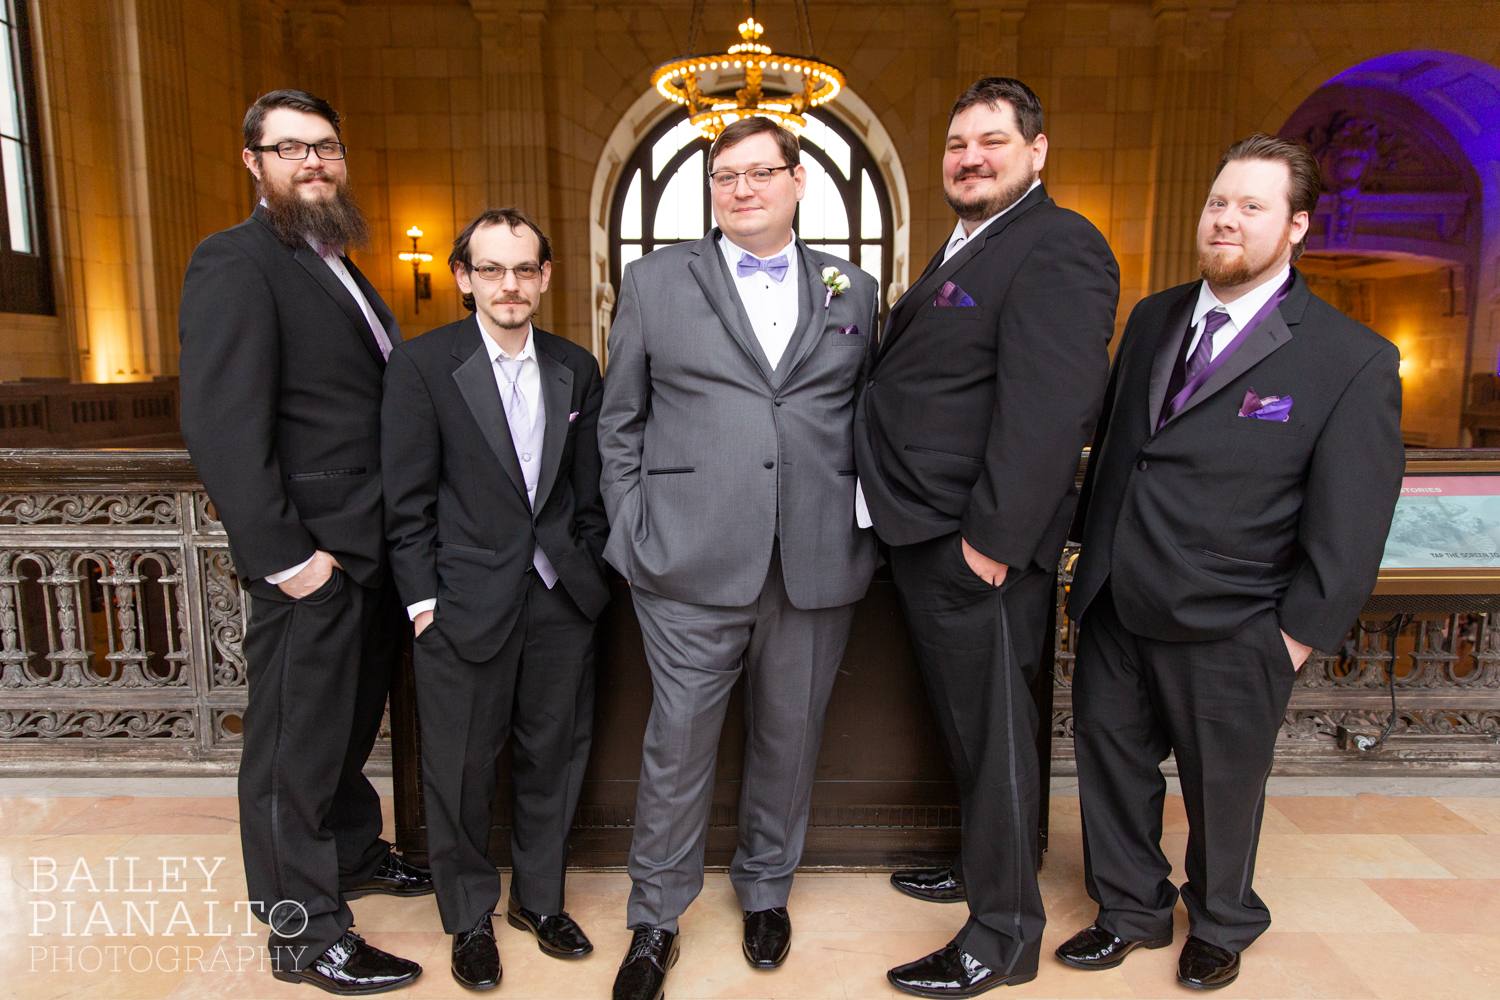 Groomsmen Portraits at Purple & Gray Down-to-Earth Spring Wedding  | Union Station | Kansas City, MO